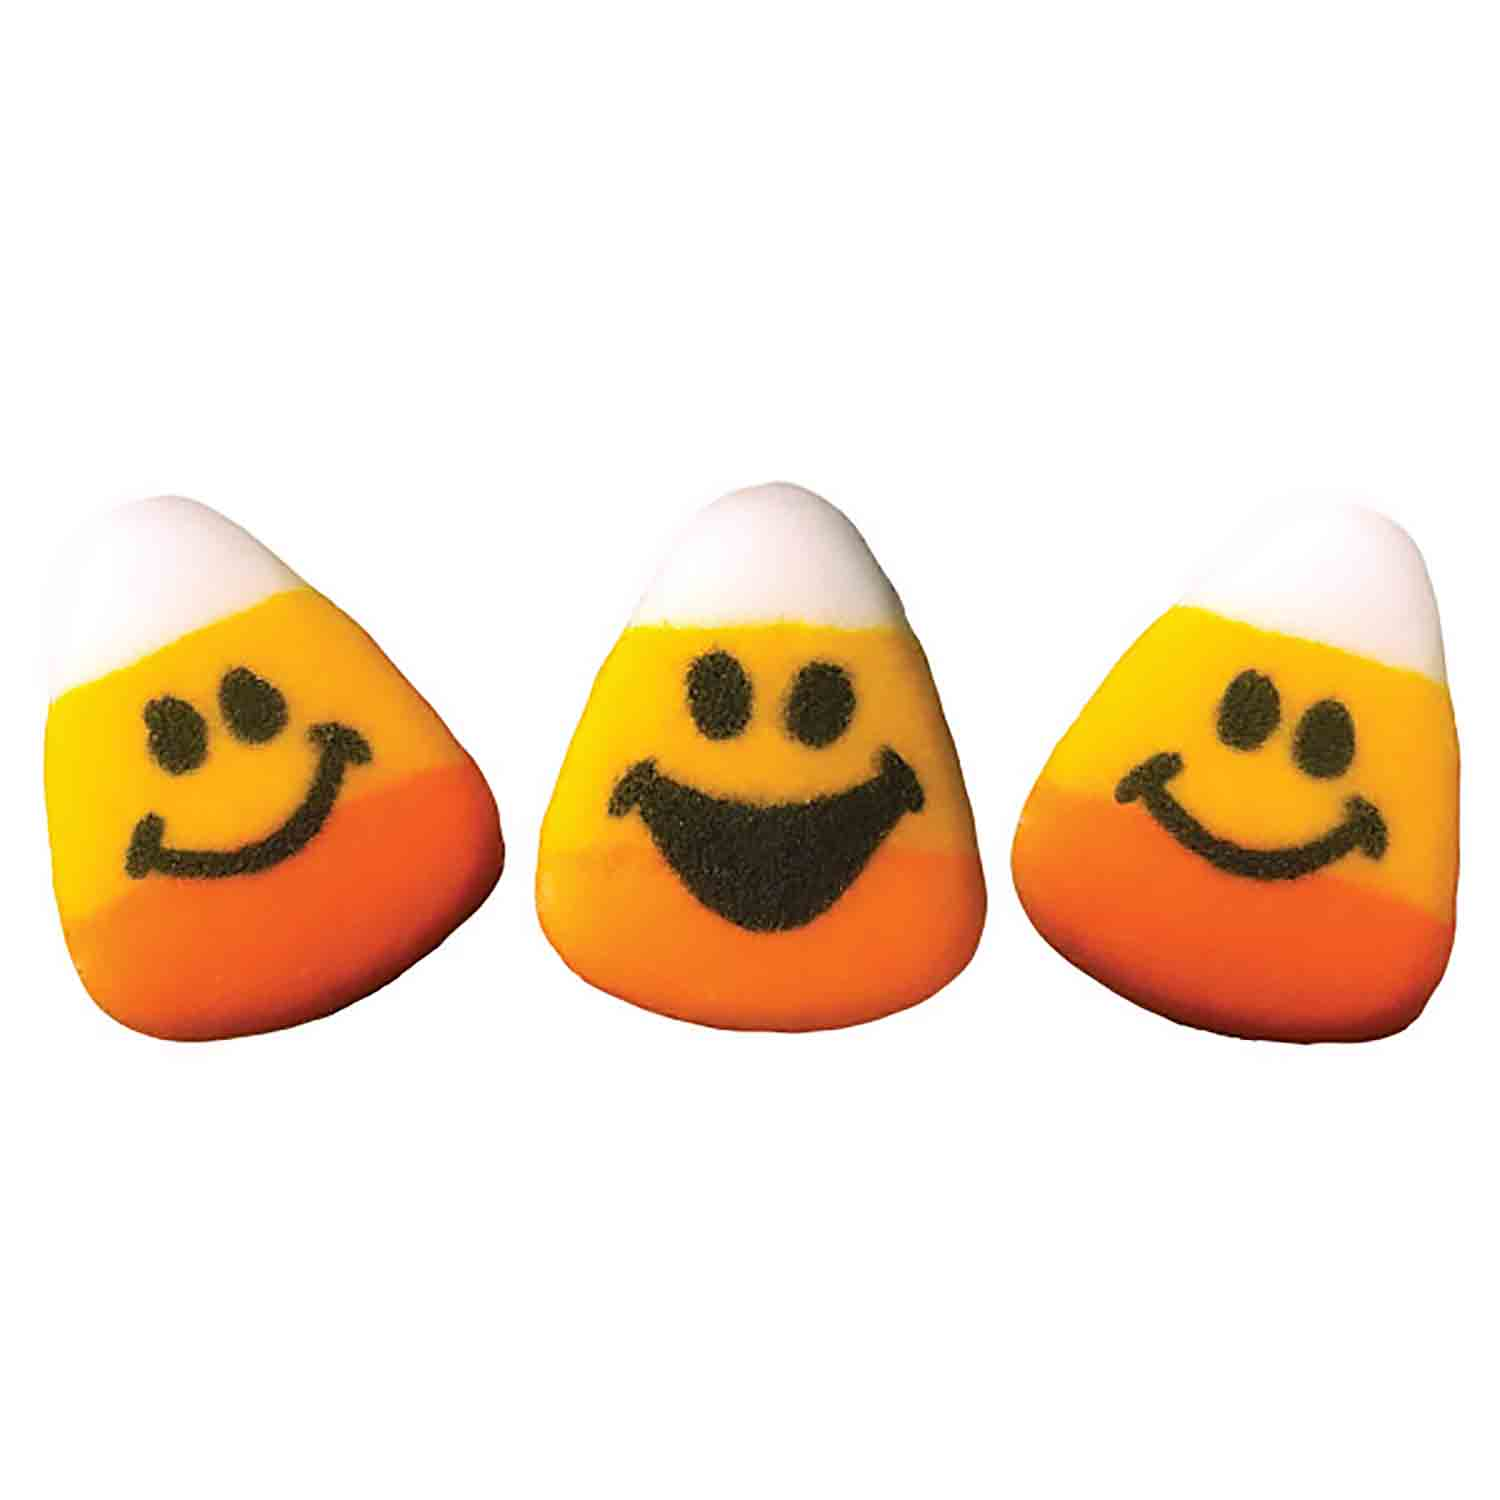 Dec-Ons® Molded Sugar - Candy Corn Faces